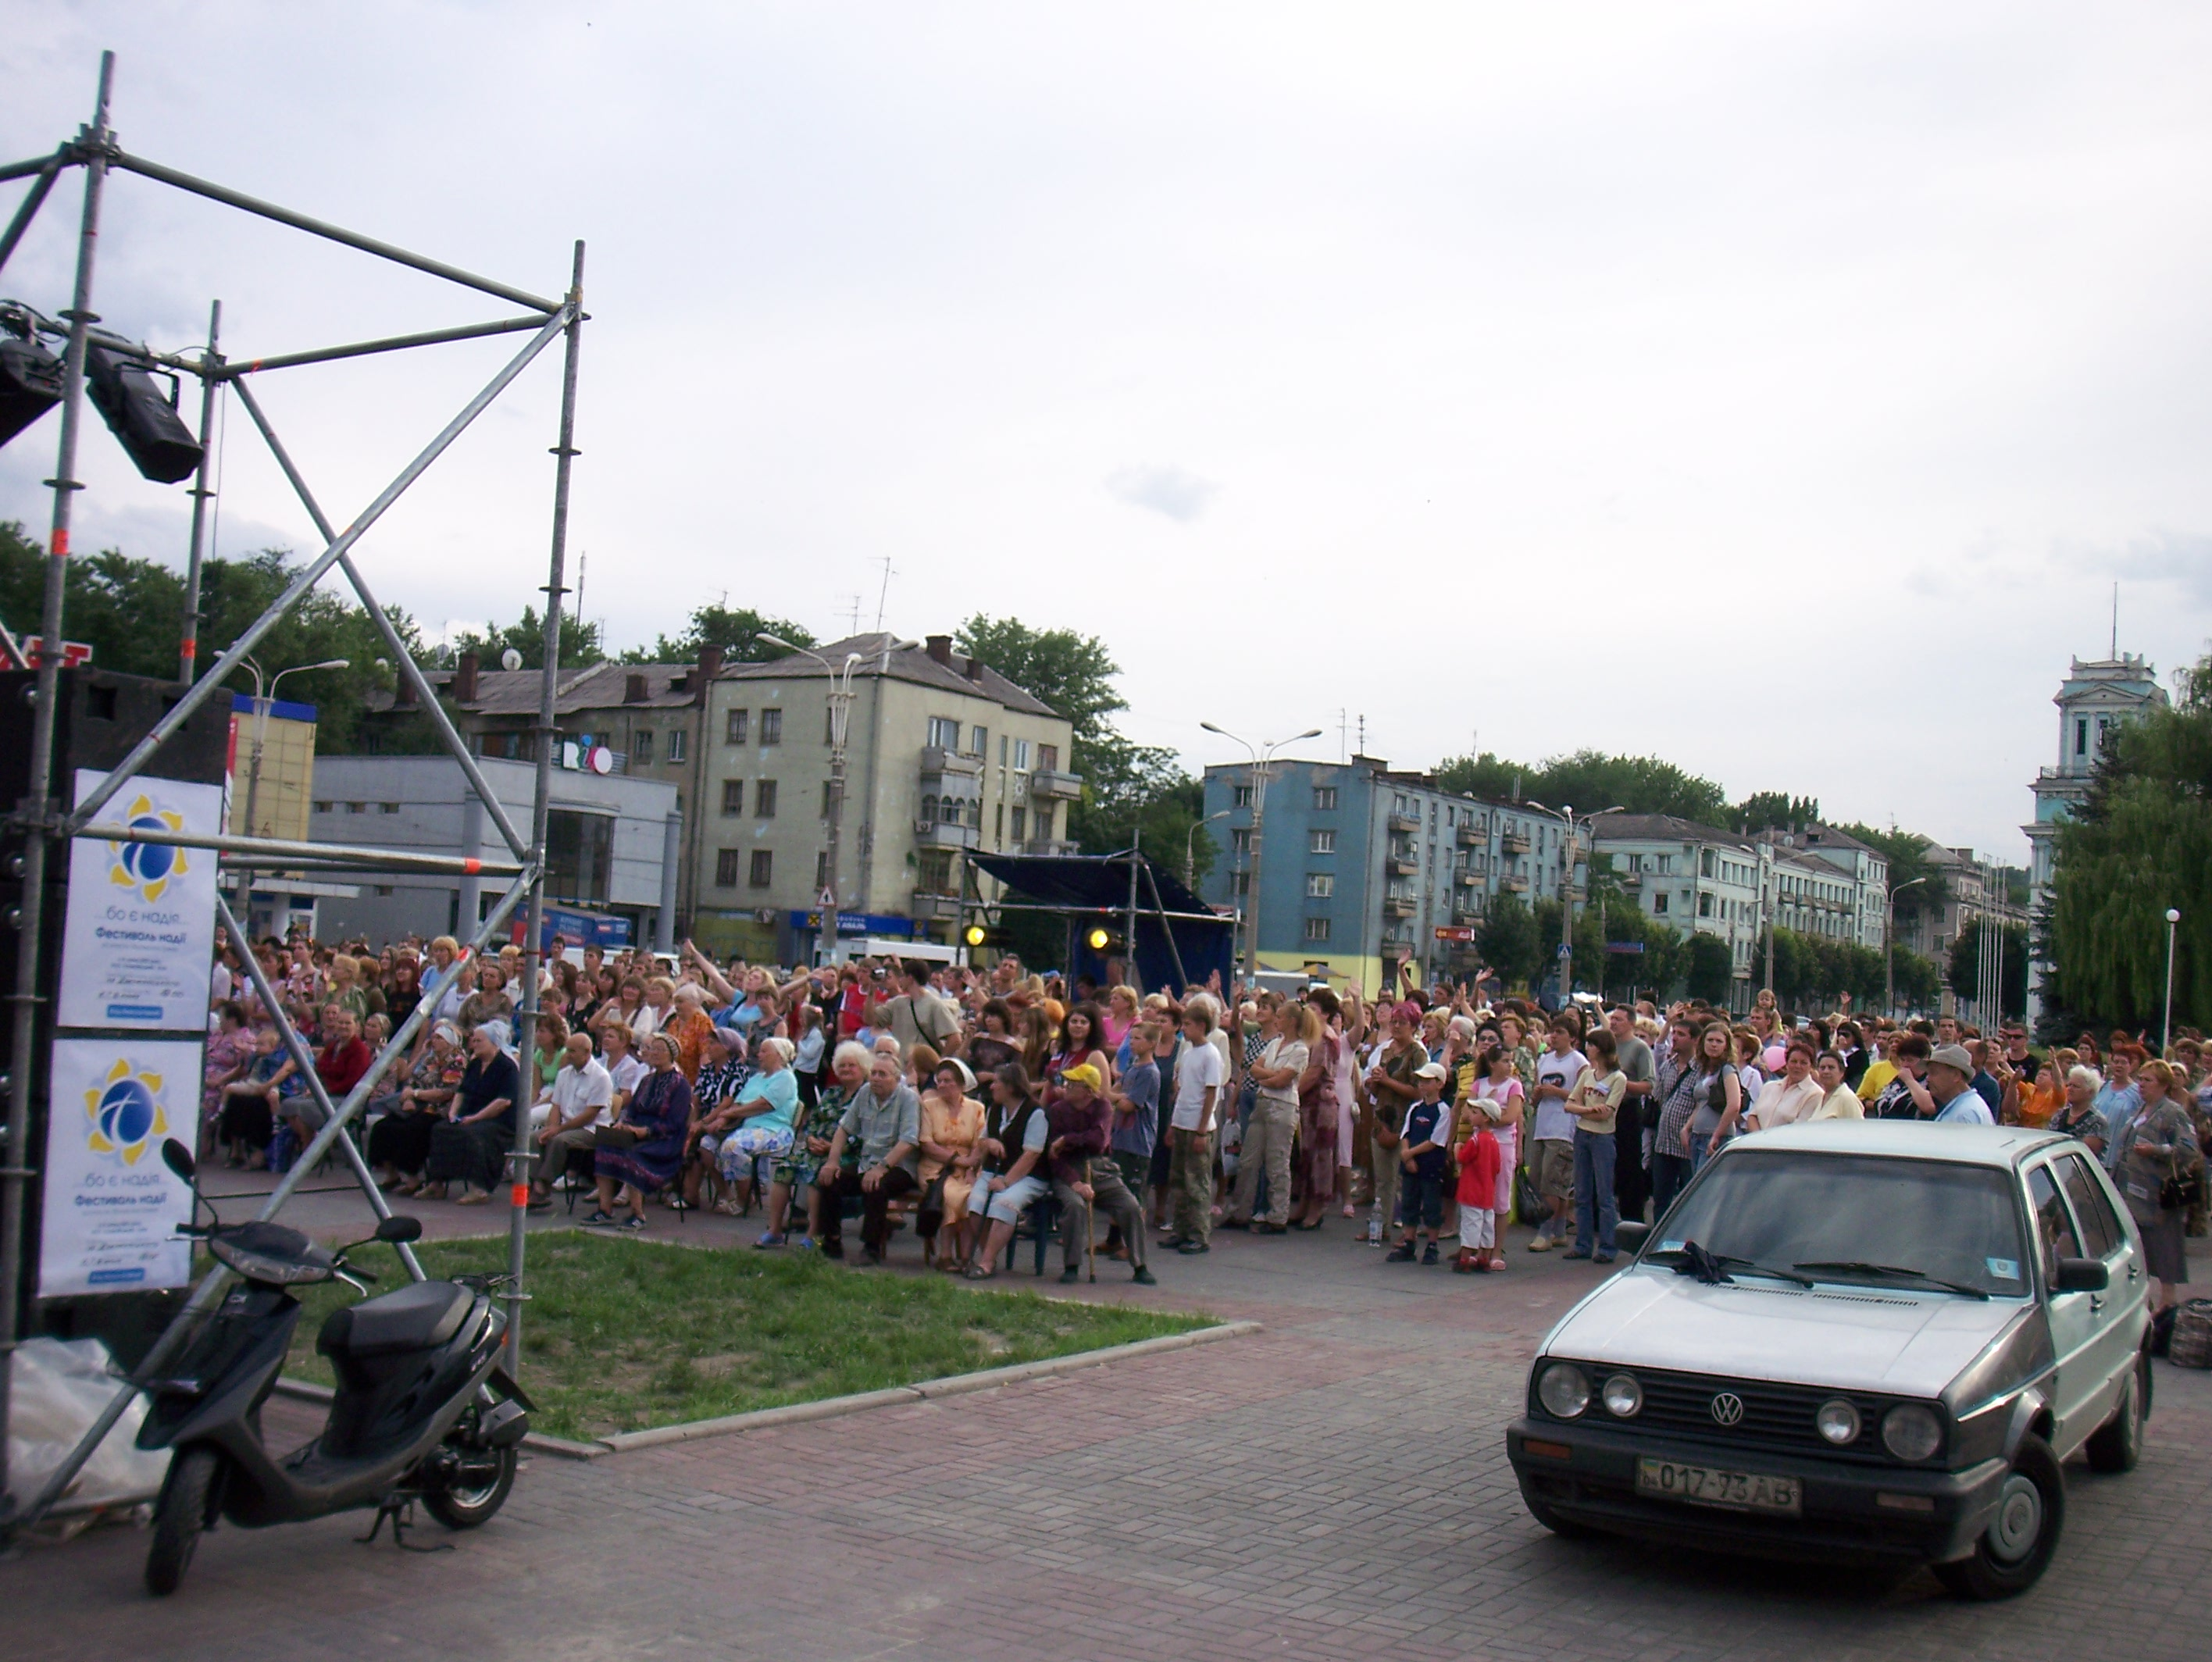 In 2007, we enabled and helped the Festival of Hope in Kiev to be broadcast by satellite to 104 other cities in Ukraine. This scene is from Dnieprodzerzhins'k.